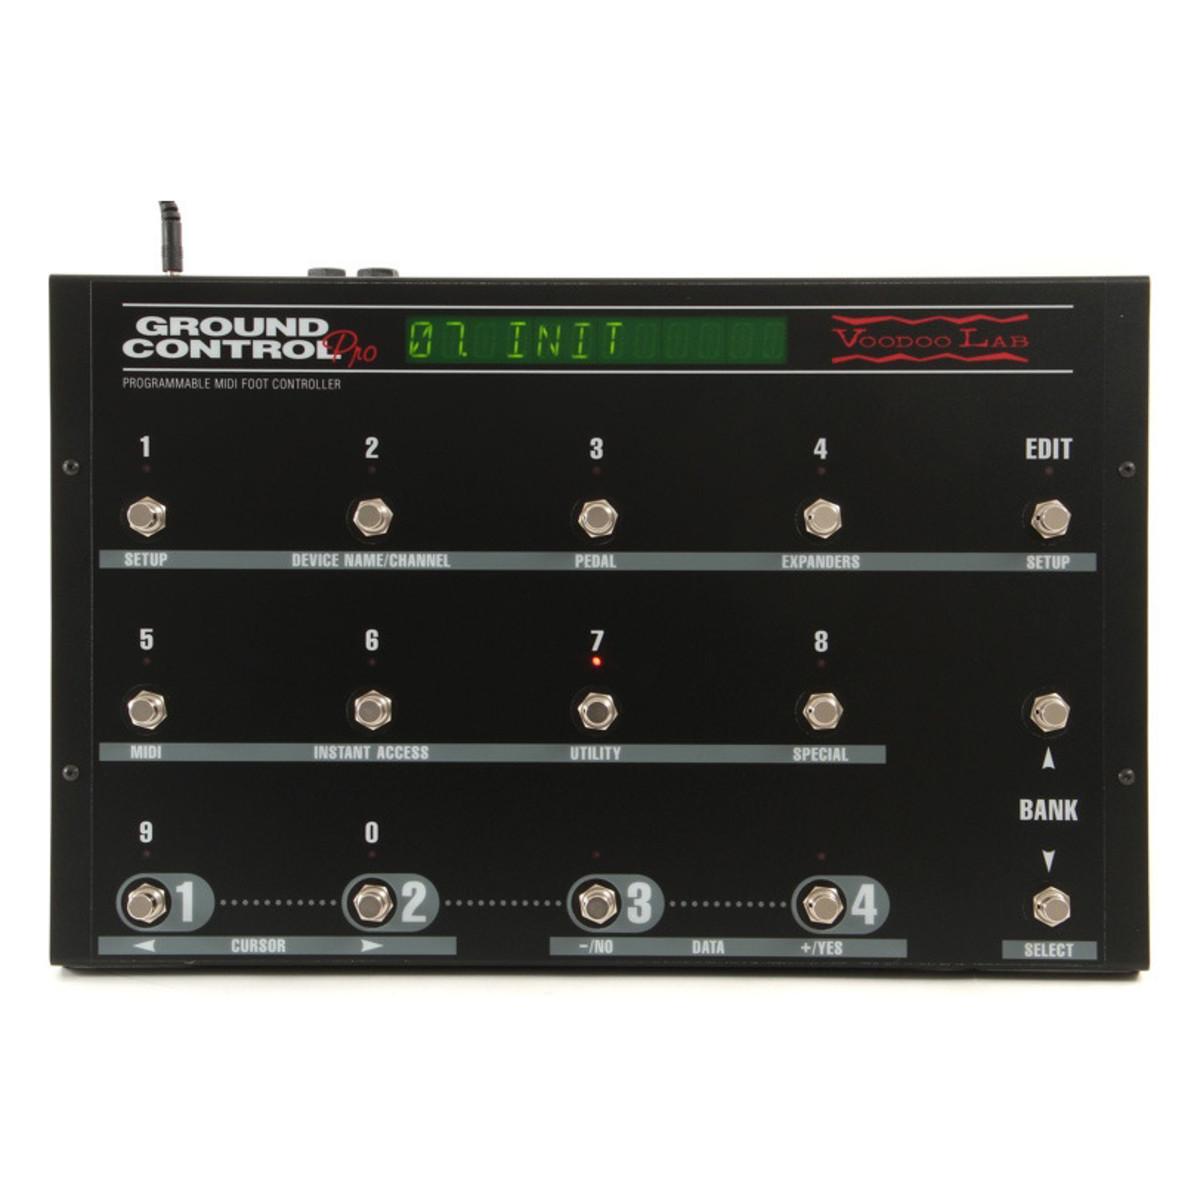 voodoo lab ground control pro at gear4music. Black Bedroom Furniture Sets. Home Design Ideas